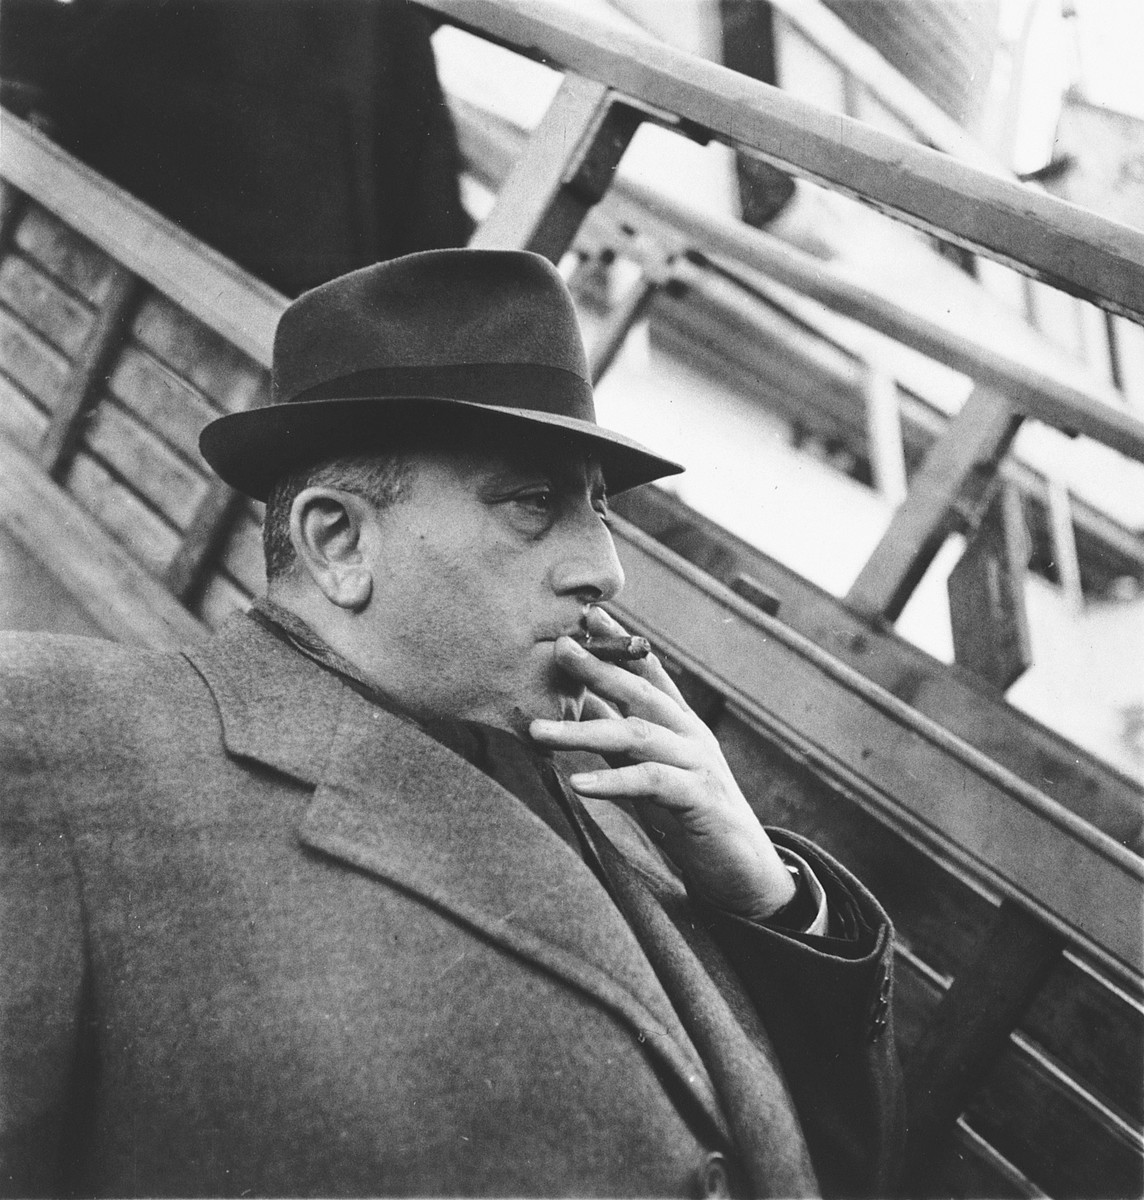 Albert Nussbaum, director of Transmigration for the American Joint Distribution Committee, smokes a cigar while waiting next to the gangway of the SS Serpa Pinto.